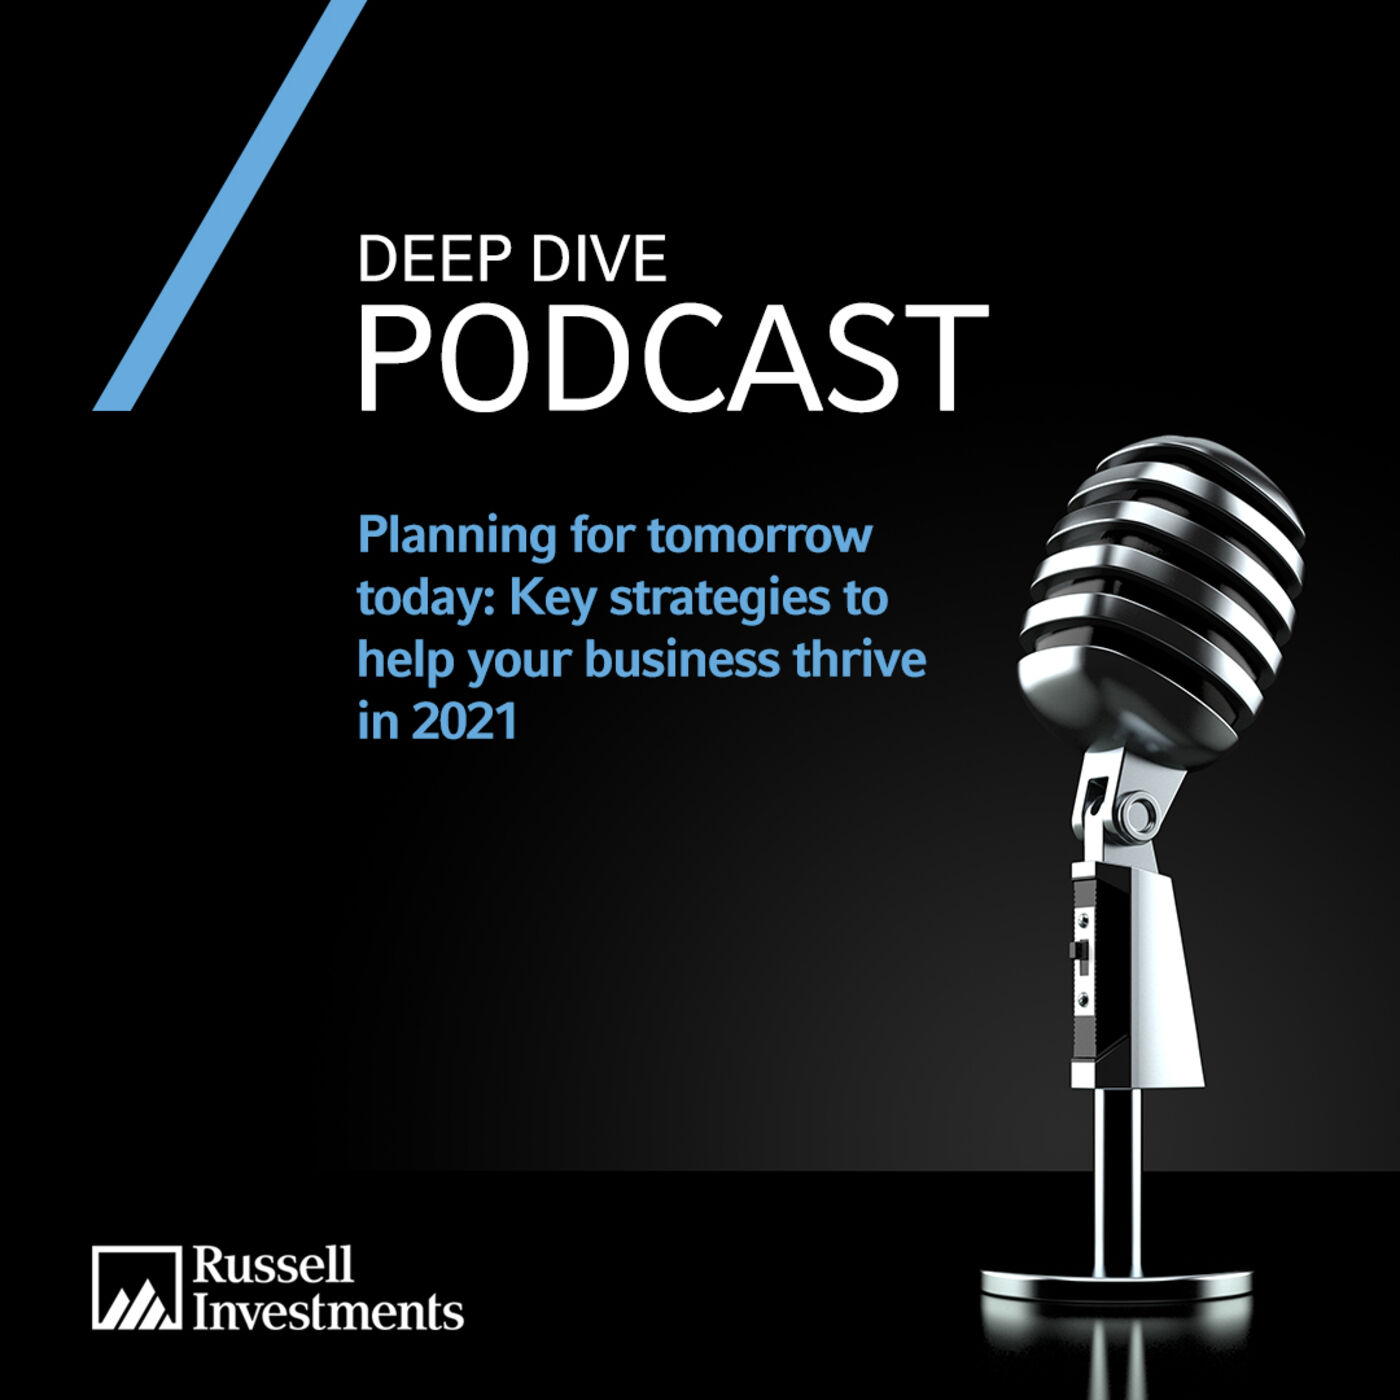 Deep Dive | Planning for tomorrow today: Key strategies to help your business thrive in 2021